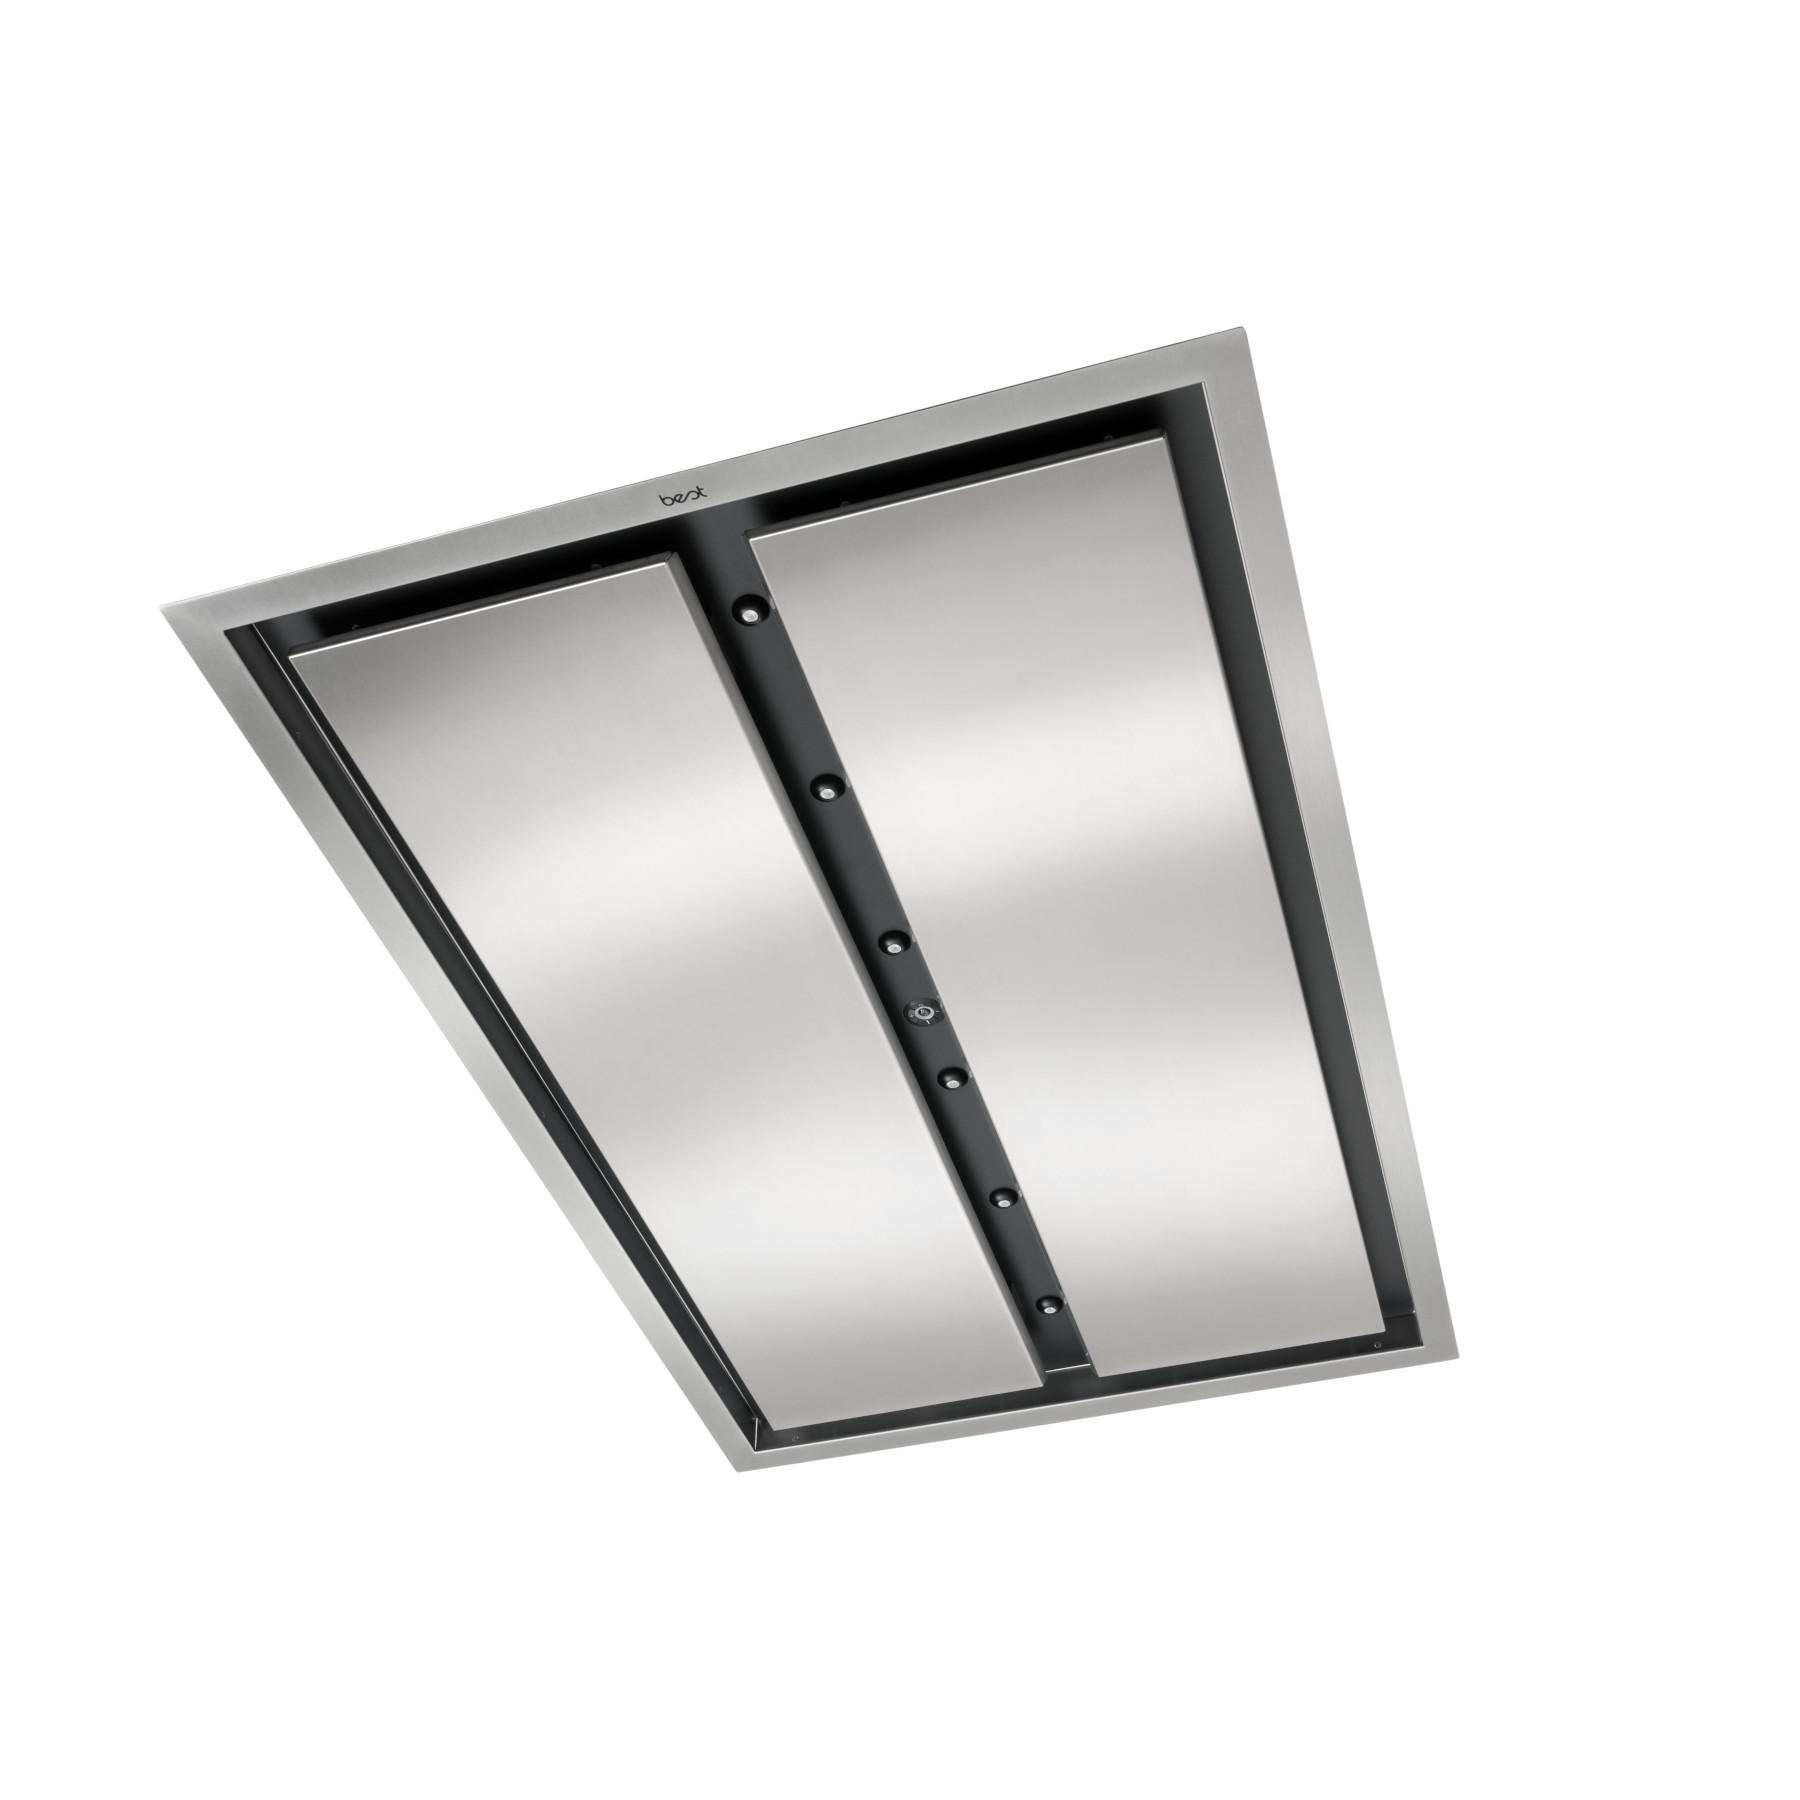 43-inch Brushed Stainless Steel Ceiling Mounted Range Hood with LED Light, internal 800 Max Blower CFM (CC34-43 Series)